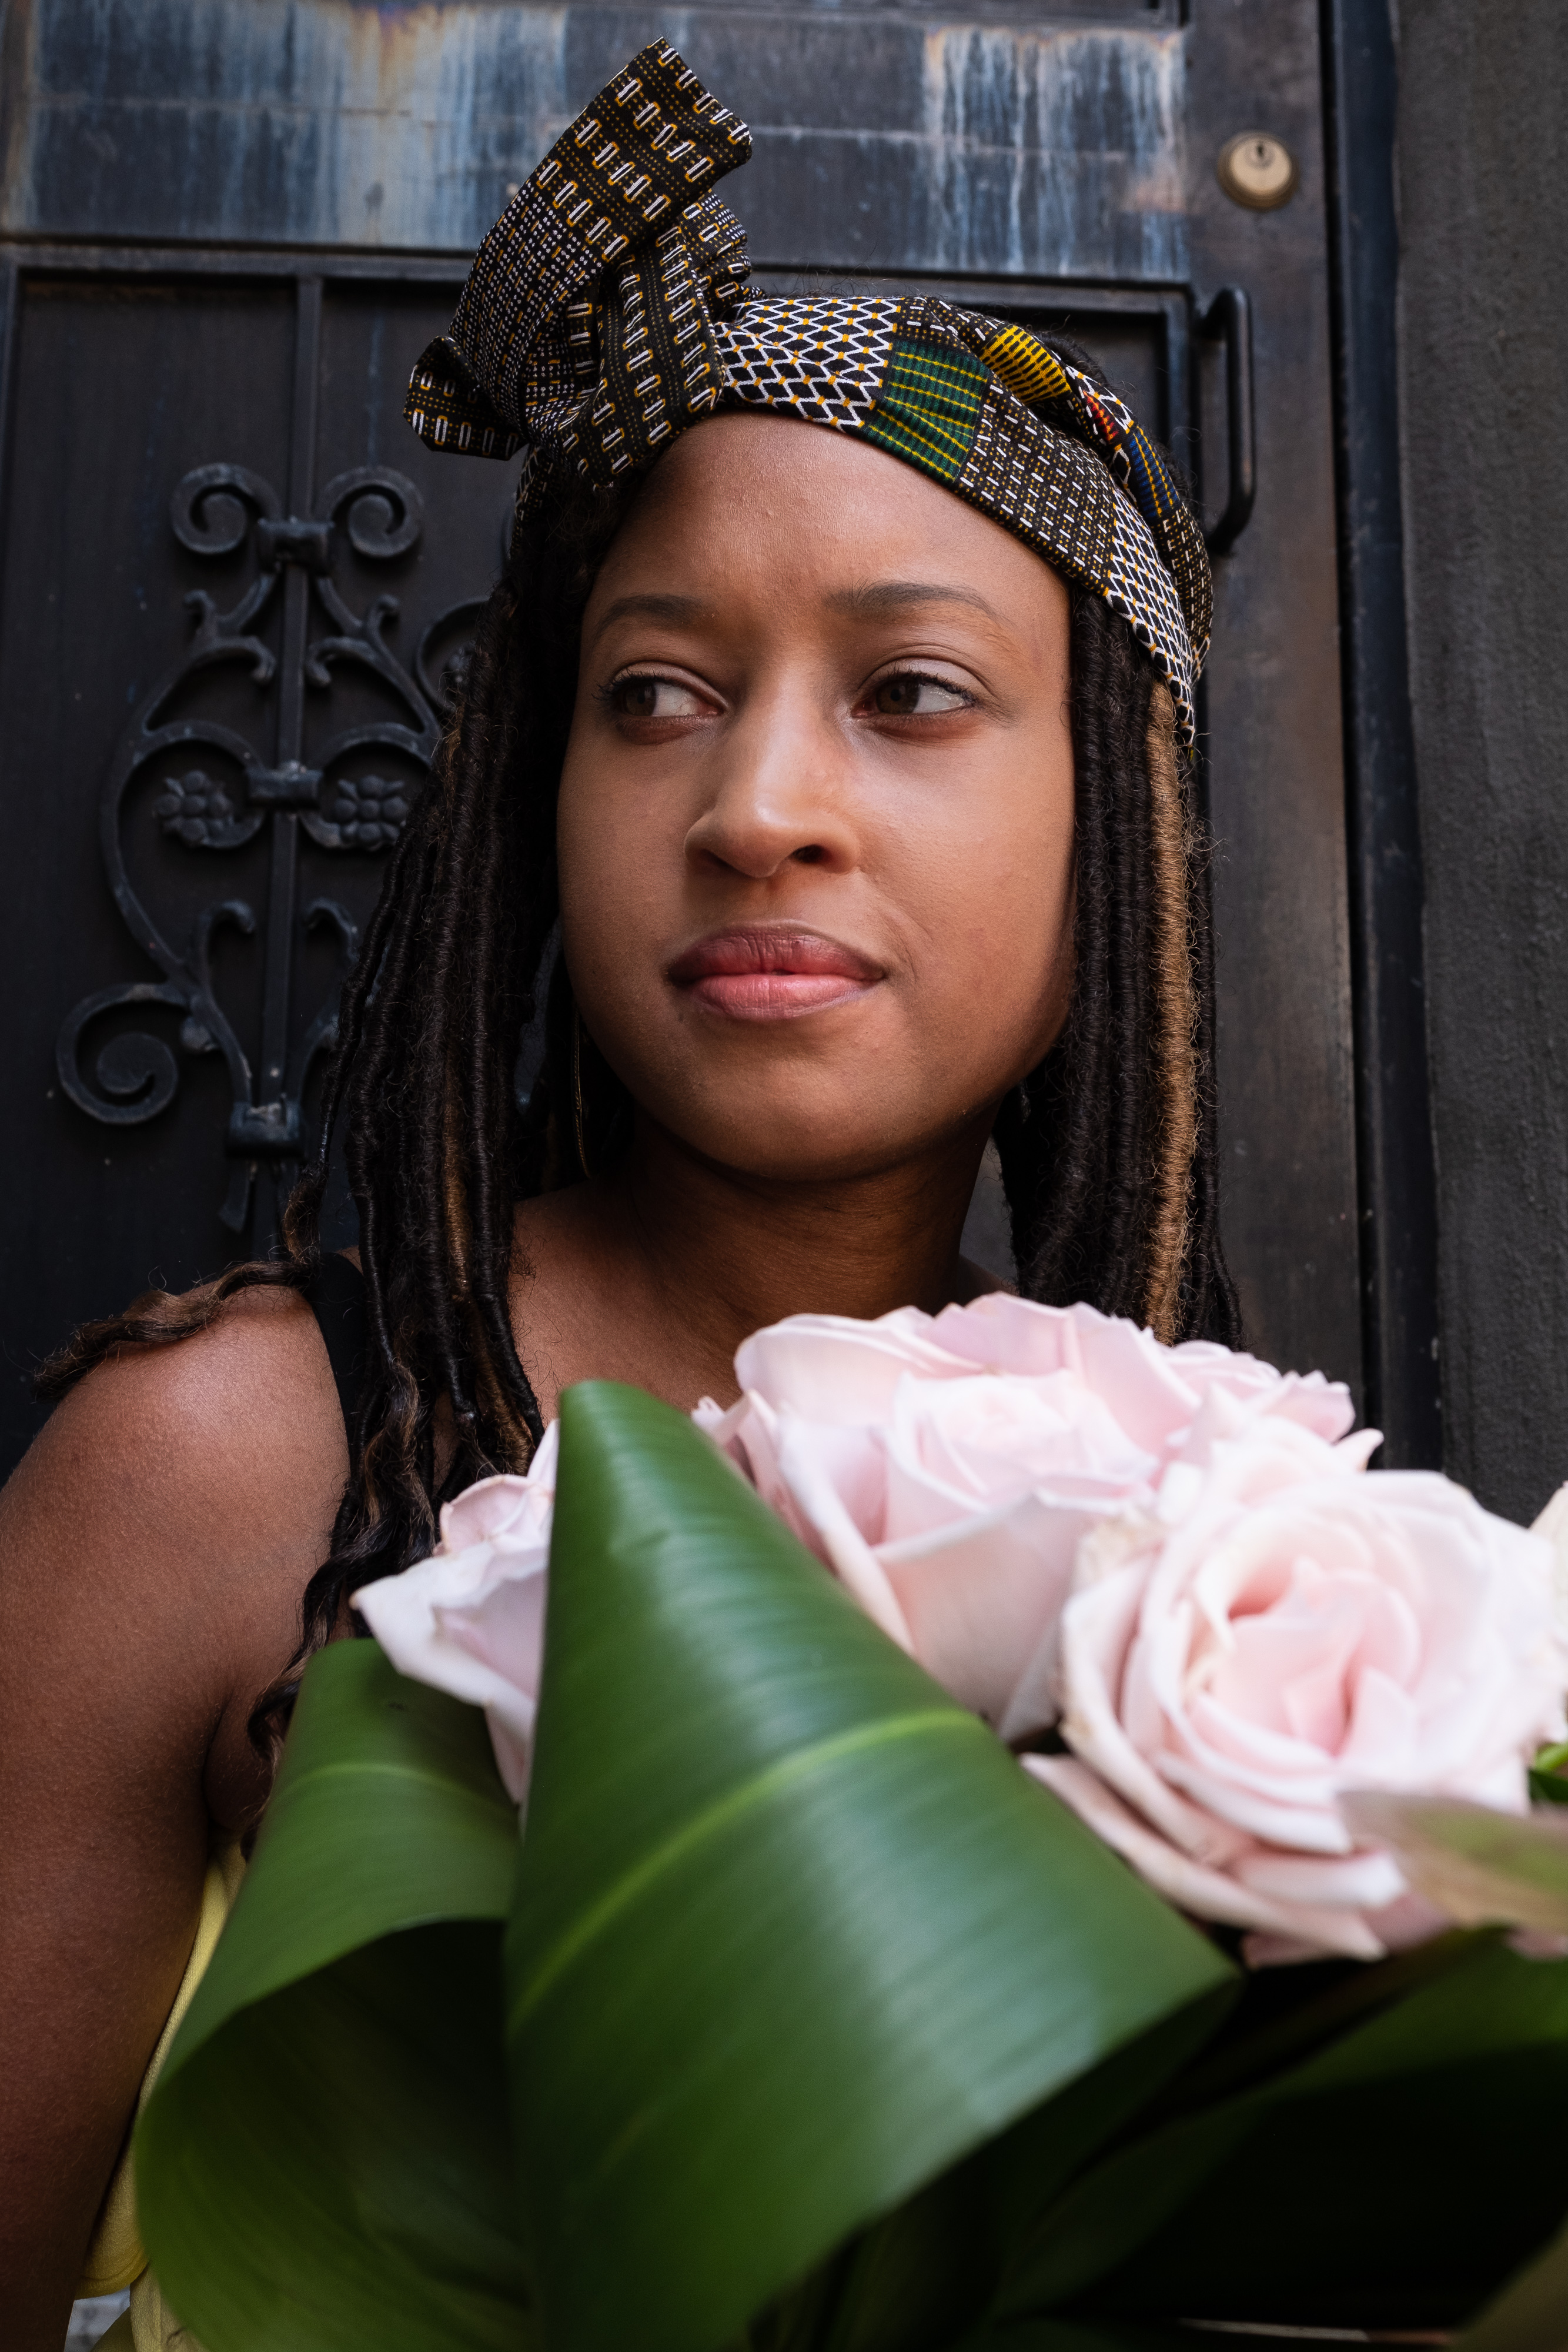 Beautiful woman wearing a brown headwrap with blocks of color throughout, against a black rod iron door at Cassava House. Holding a bouquet of pink roses.